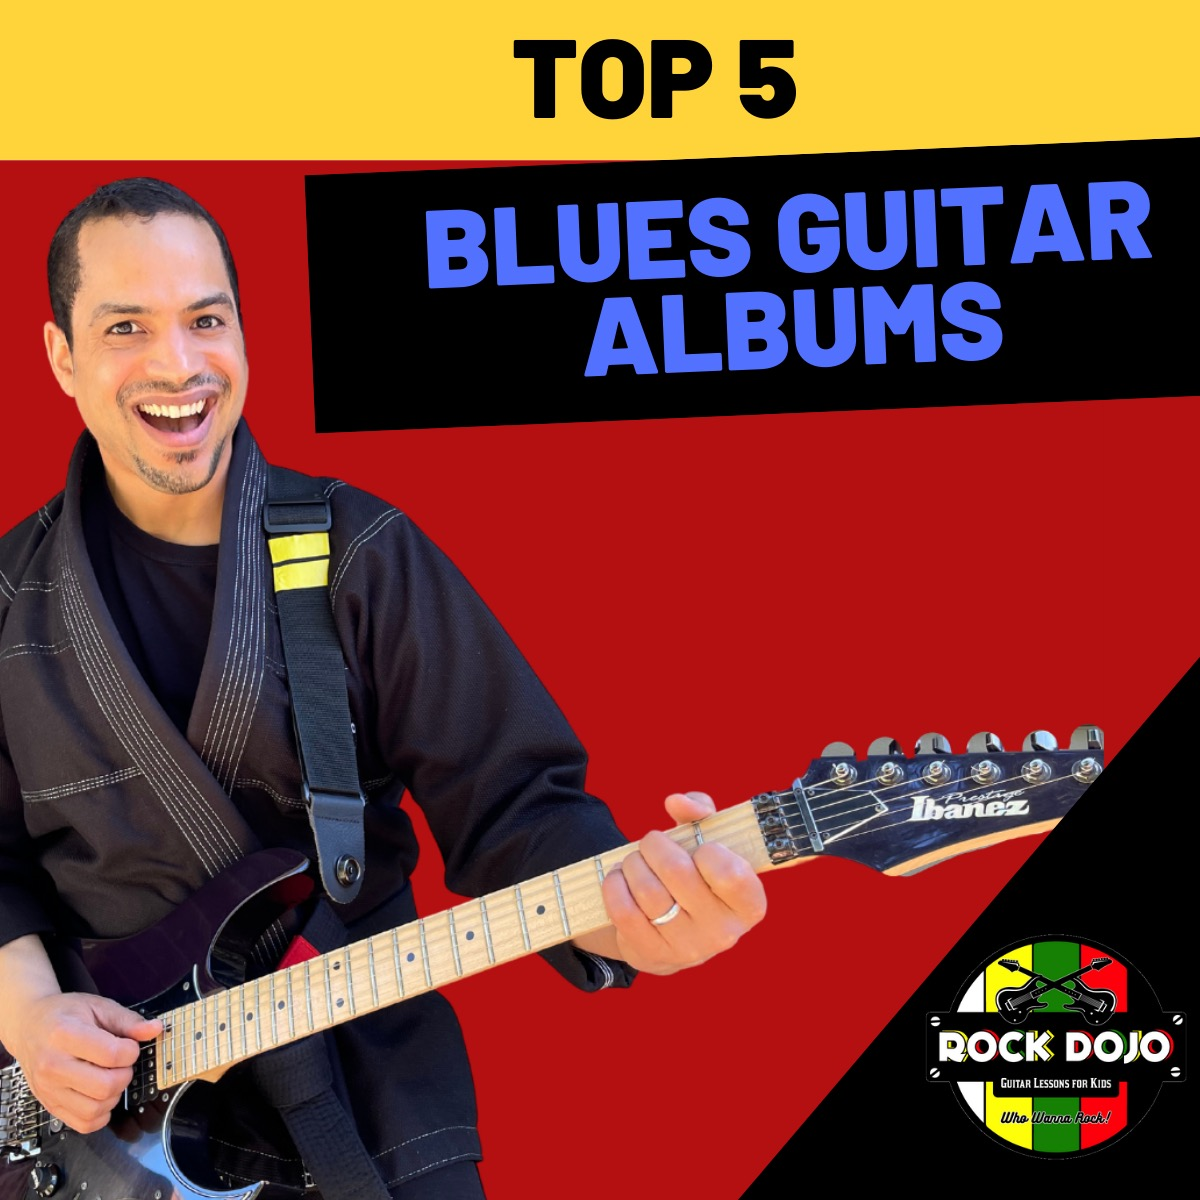 Brian's Top 5 Blues Guitar Albums of All Time